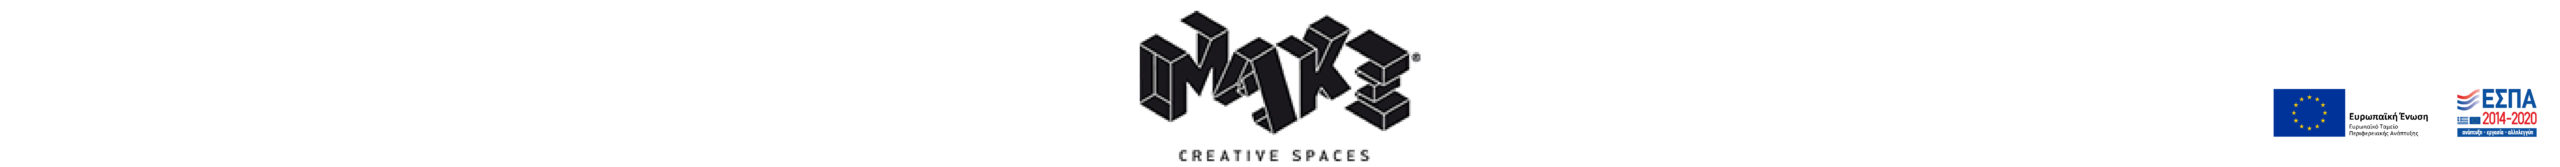 MAKE Creative Spaces Logo